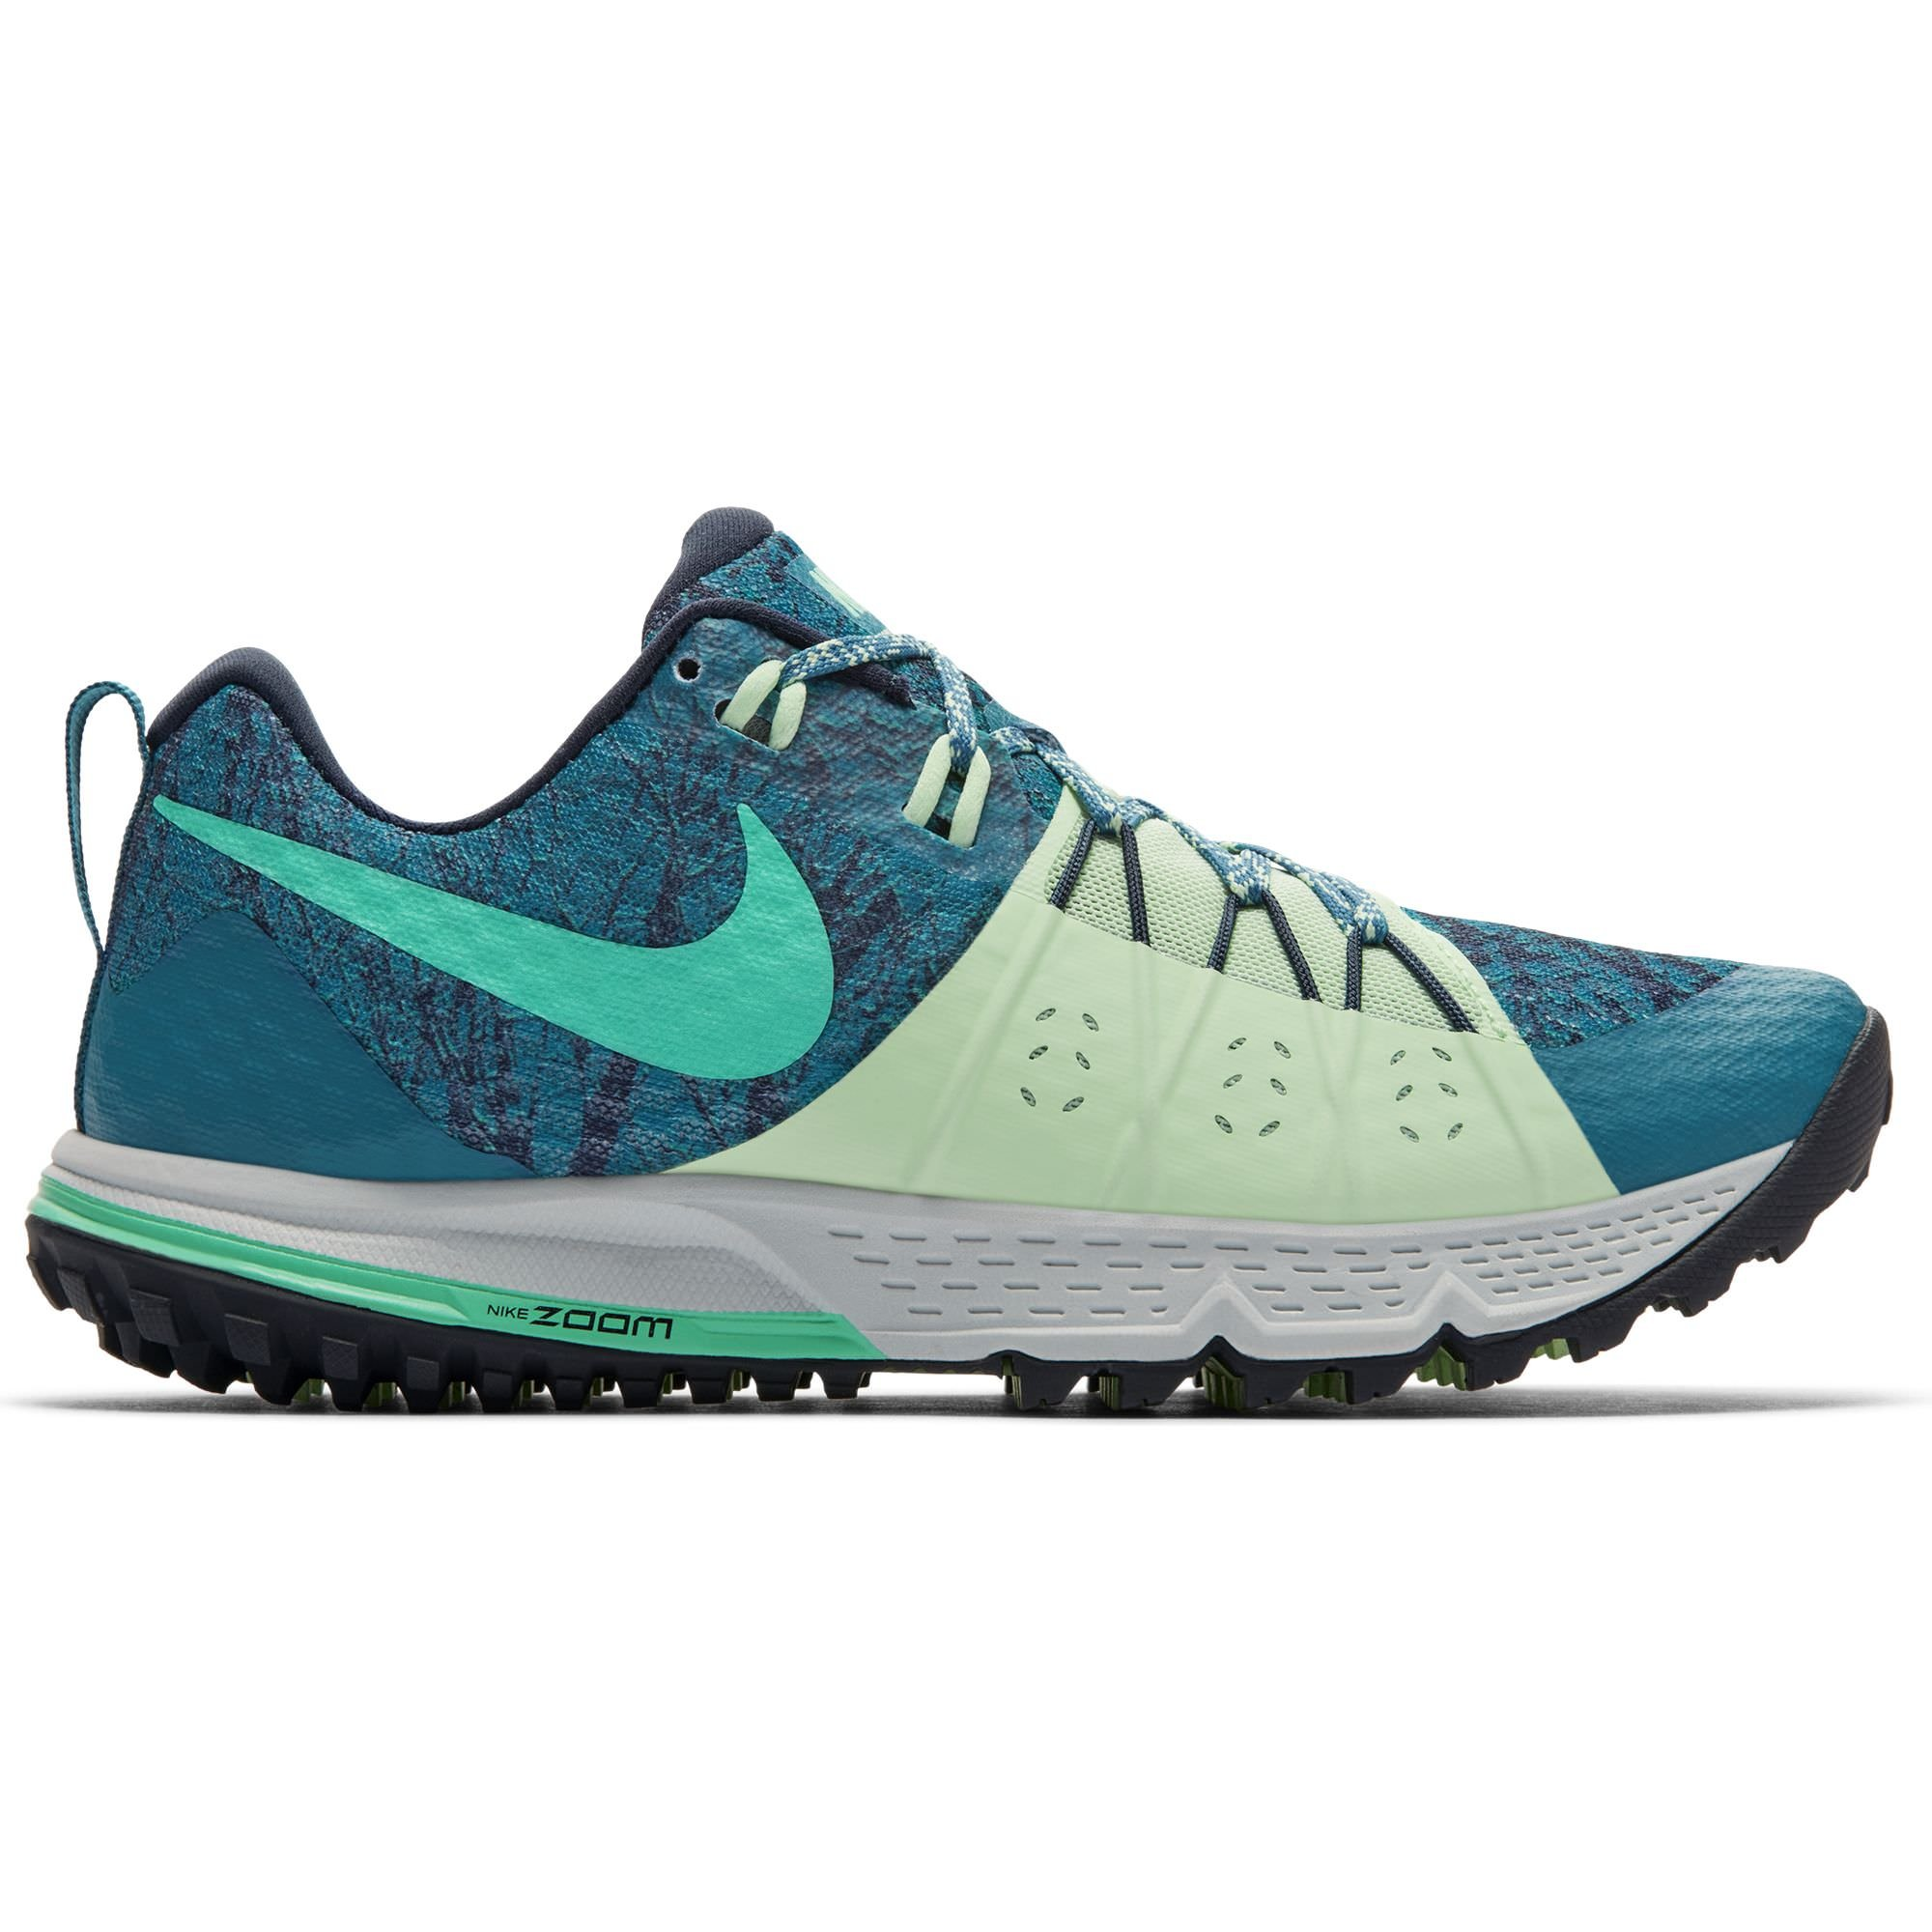 NIKE Women's Air Zoom Wildhorse 4 Running Shoe Green Abyss/Menta-Obsidian-Vapor Green 6.5 by NIKE (Image #1)